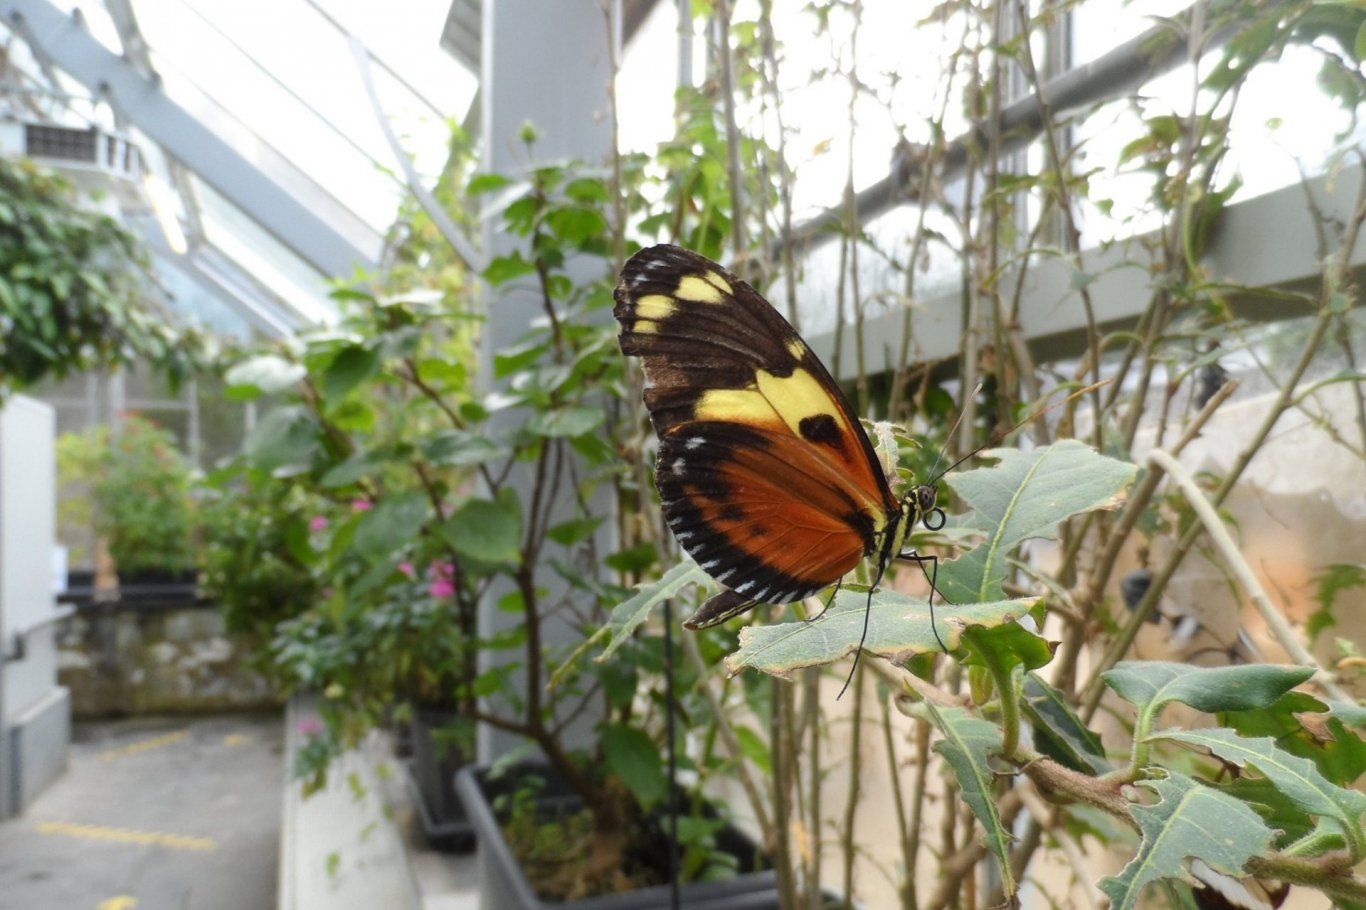 Butterfly in Butterfly House at Malahide Gardens